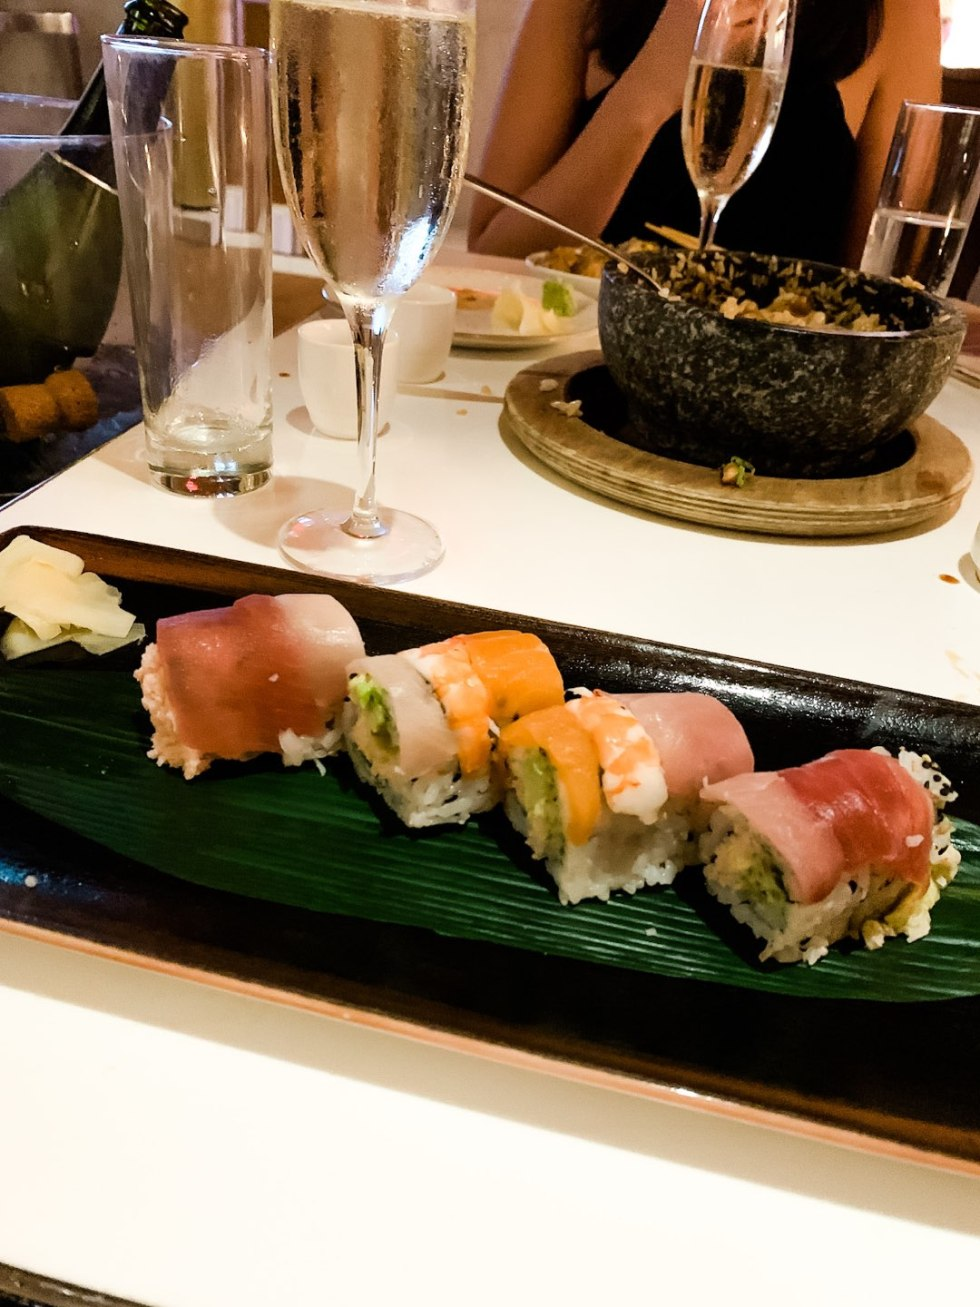 Warming Up in the Bahamas: the Best Things to Do at Baha Mar - I'm Fixin' To - @mbg0112 | Warming Up in the Bahamas: the Best Things to Do in Baha Mar by popular North Carolina travel blog, I'm Fixin' To: image of a sushi roll.